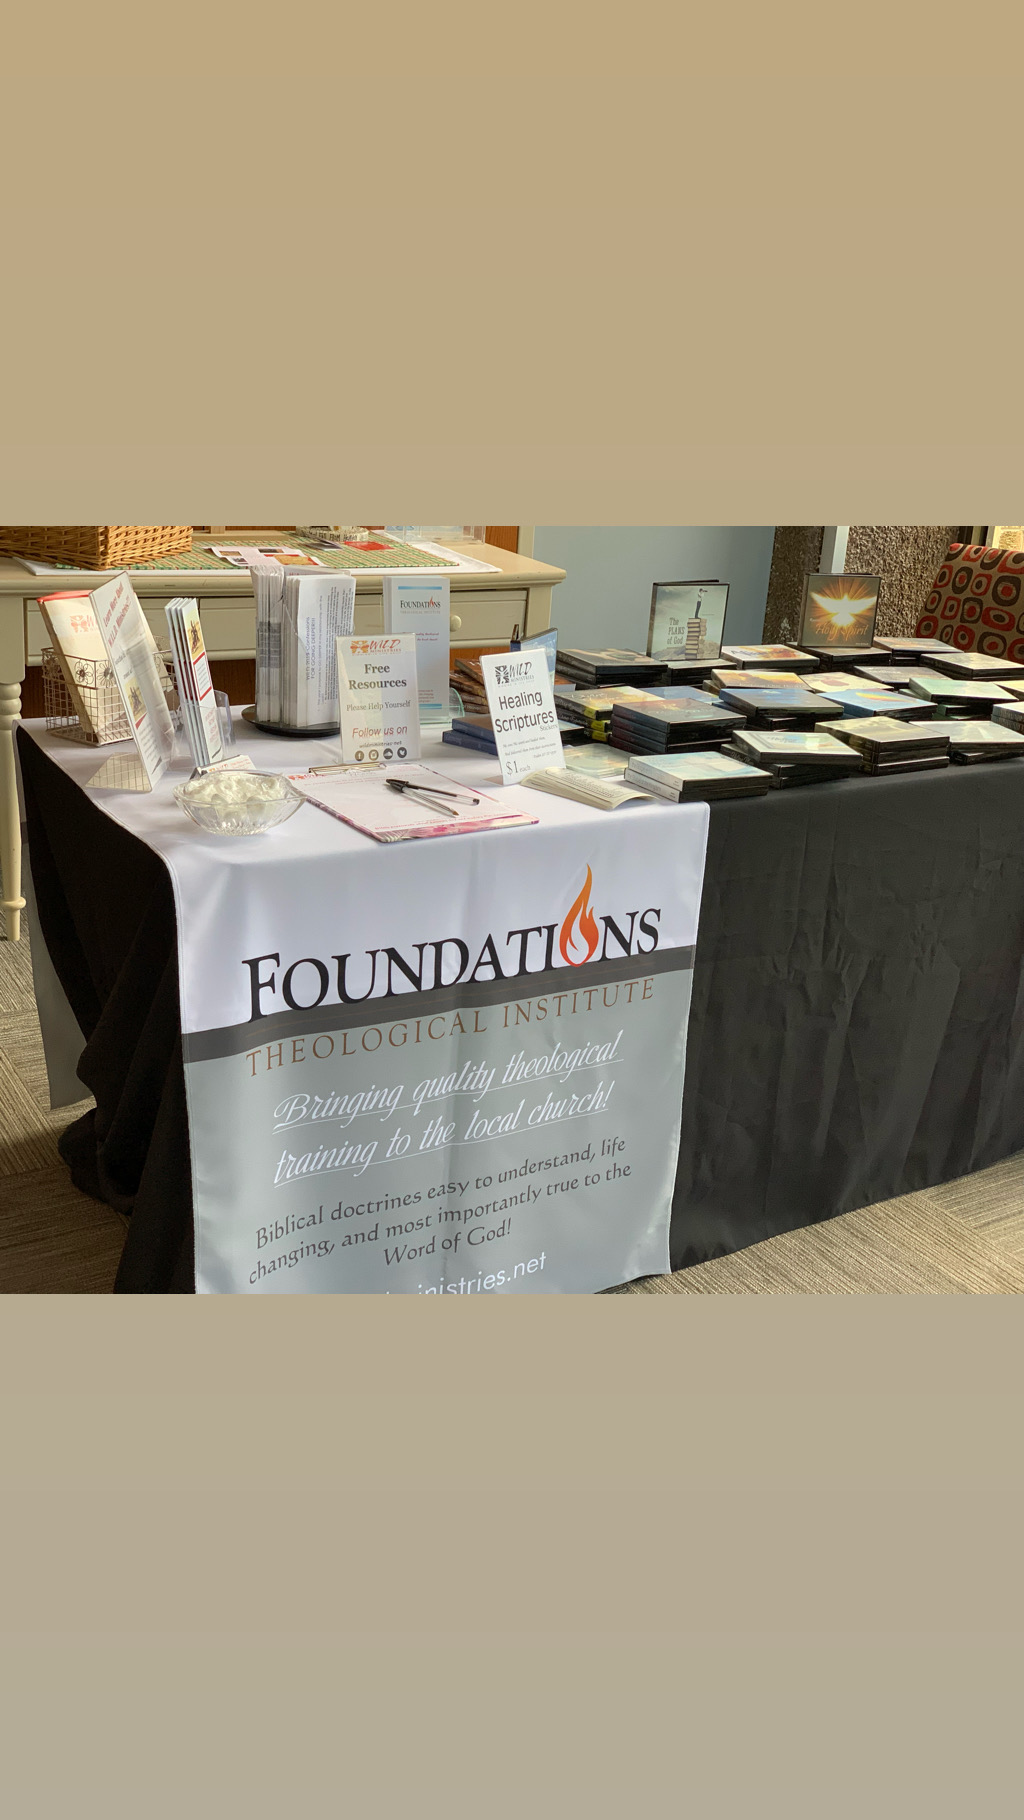 Foundations Theological Institute